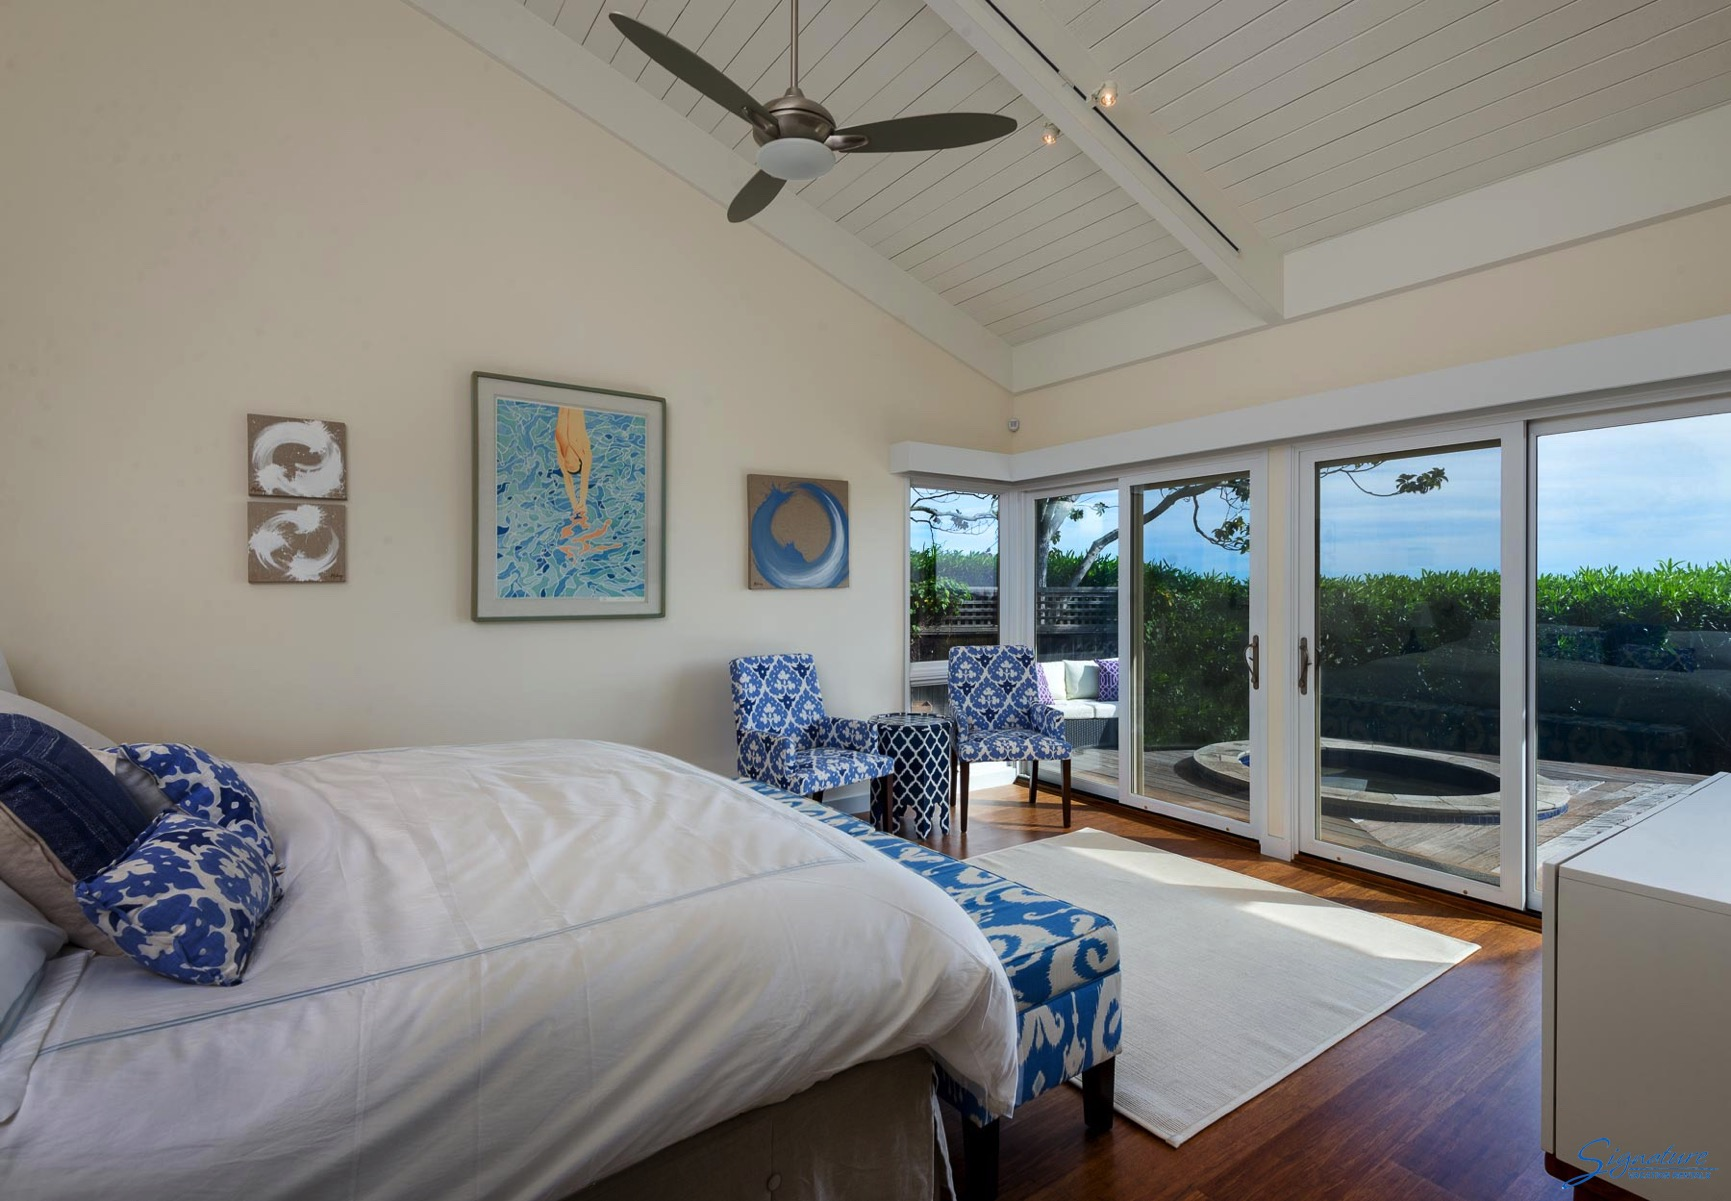 The master bedroom has views of the ocean and a deck with a sunken hot tub.